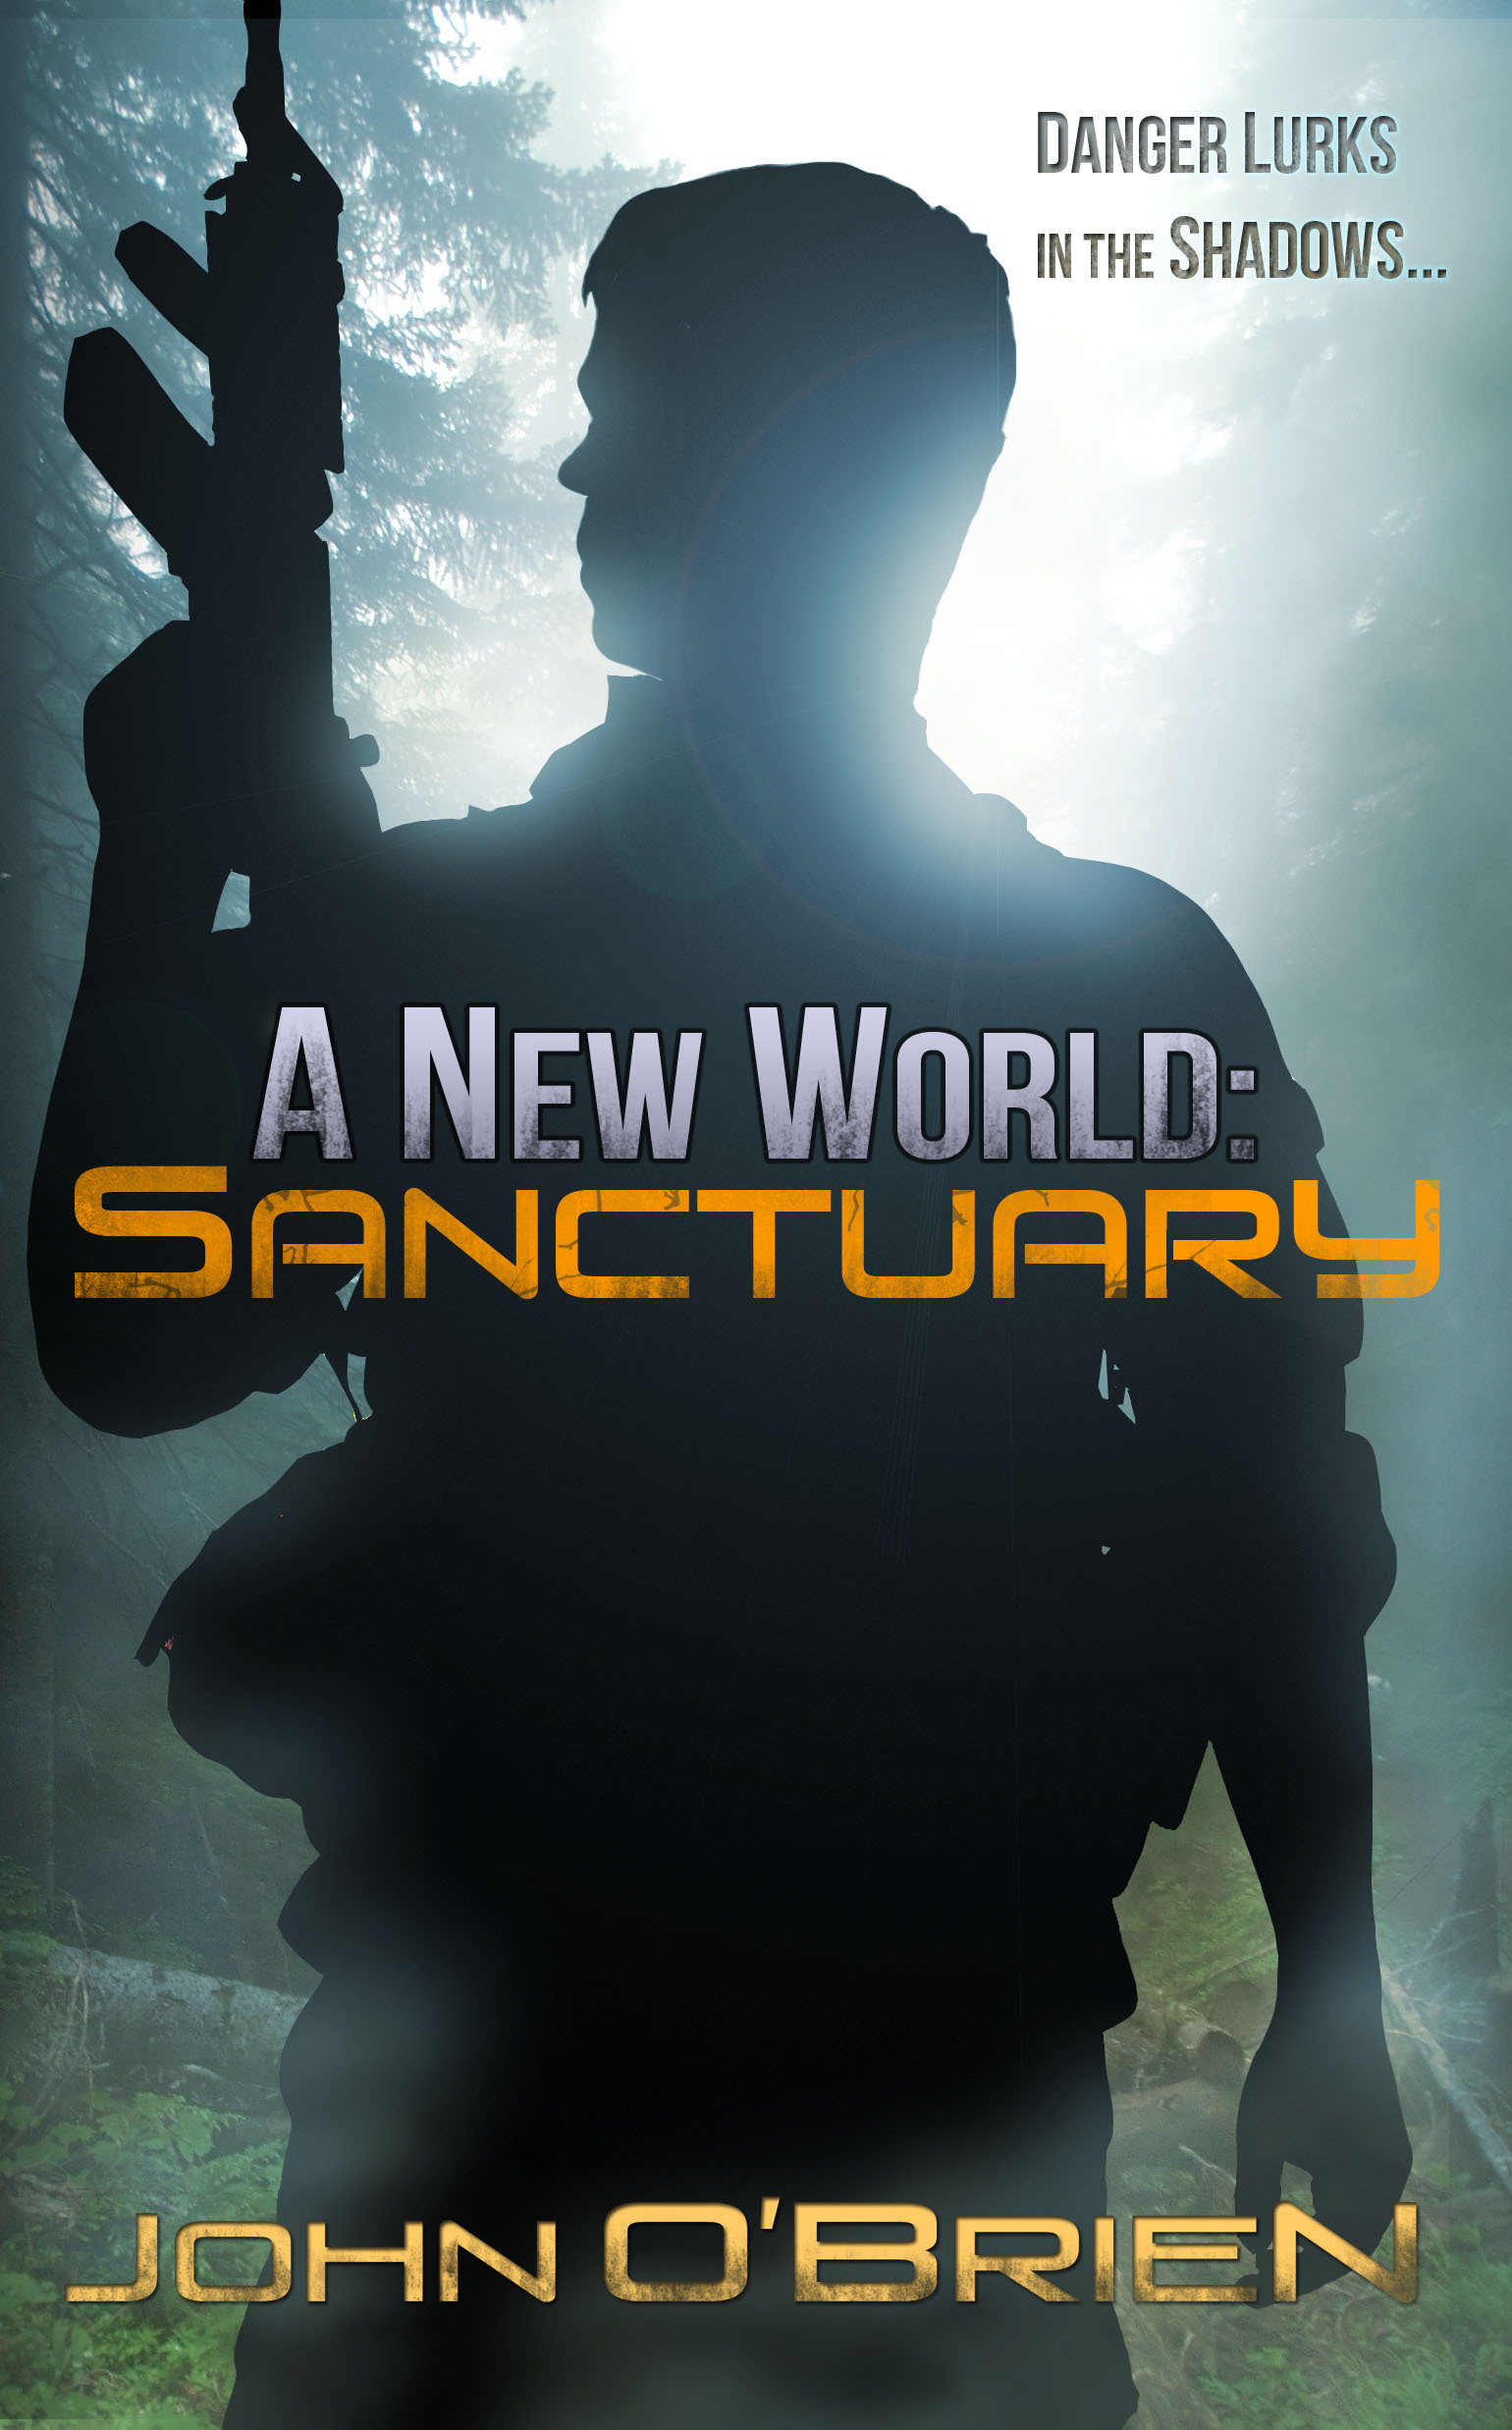 A New World: Sanctuary By: John O'Brien